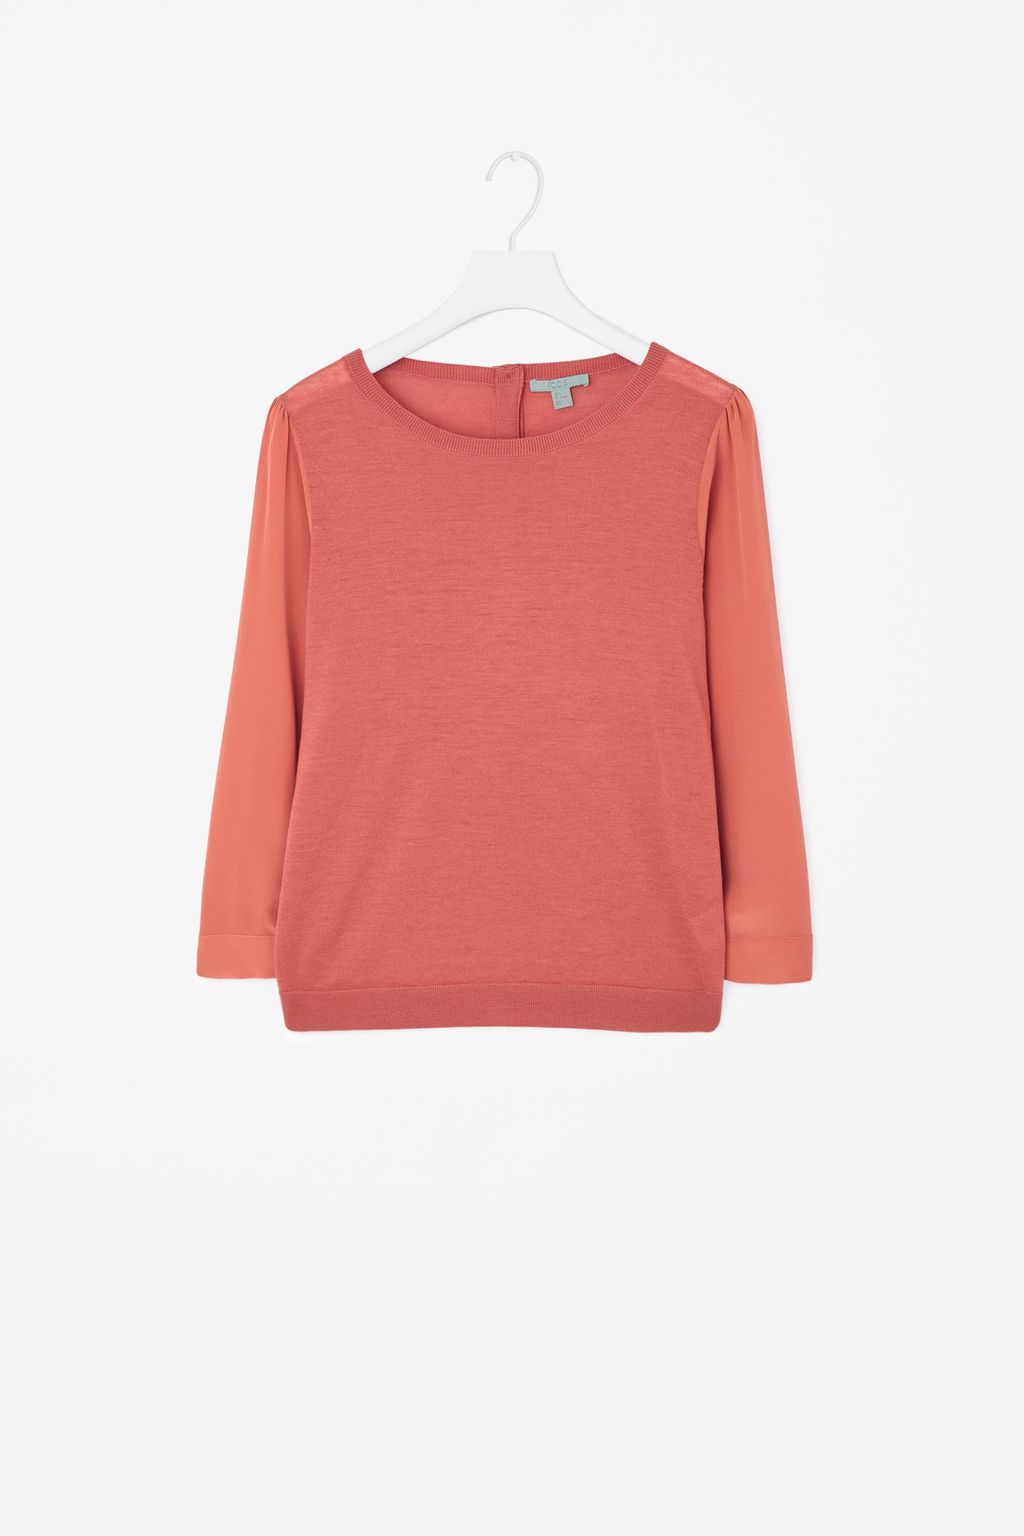 Silk Sleeve Jumper - pattern: plain; style: standard; predominant colour: pink; occasions: casual, creative work; length: standard; fibres: wool - 100%; fit: loose; neckline: crew; sleeve length: 3/4 length; sleeve style: standard; texture group: knits/crochet; pattern type: knitted - fine stitch; season: a/w 2015